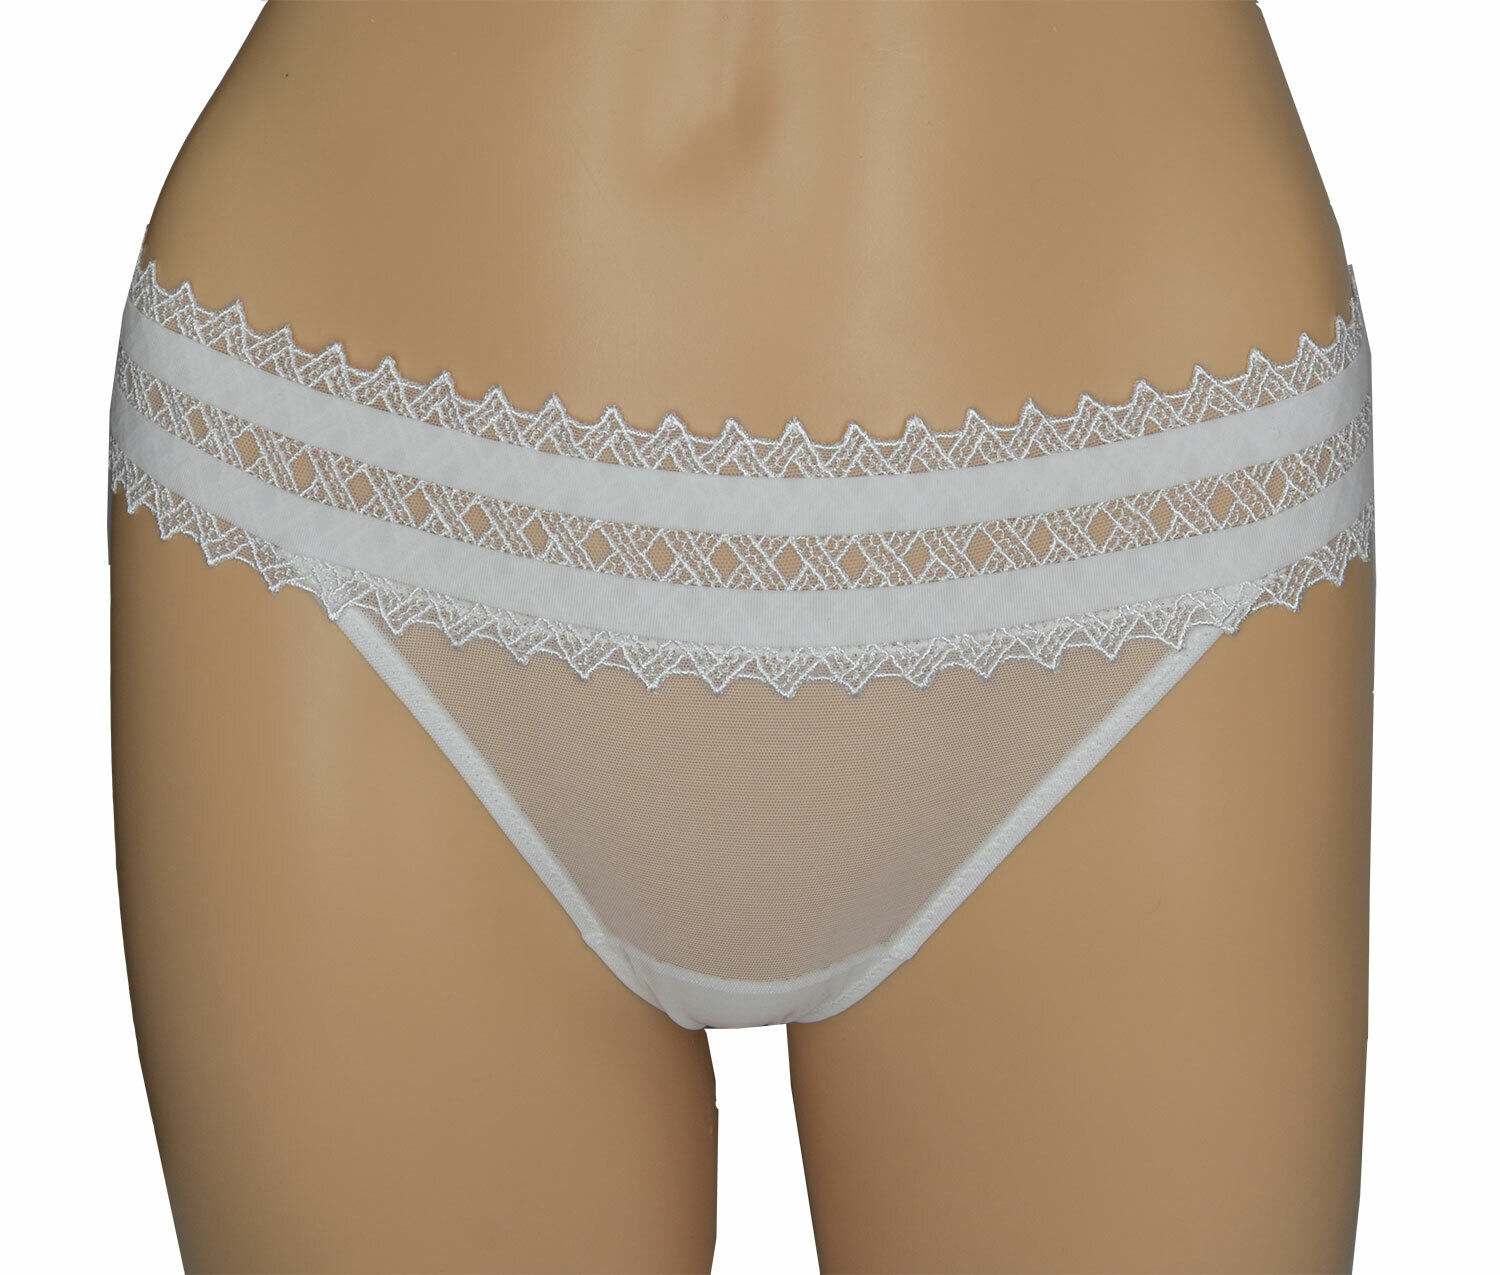 La Perla Studio Women's White Lace Trim Bikini 1 XS